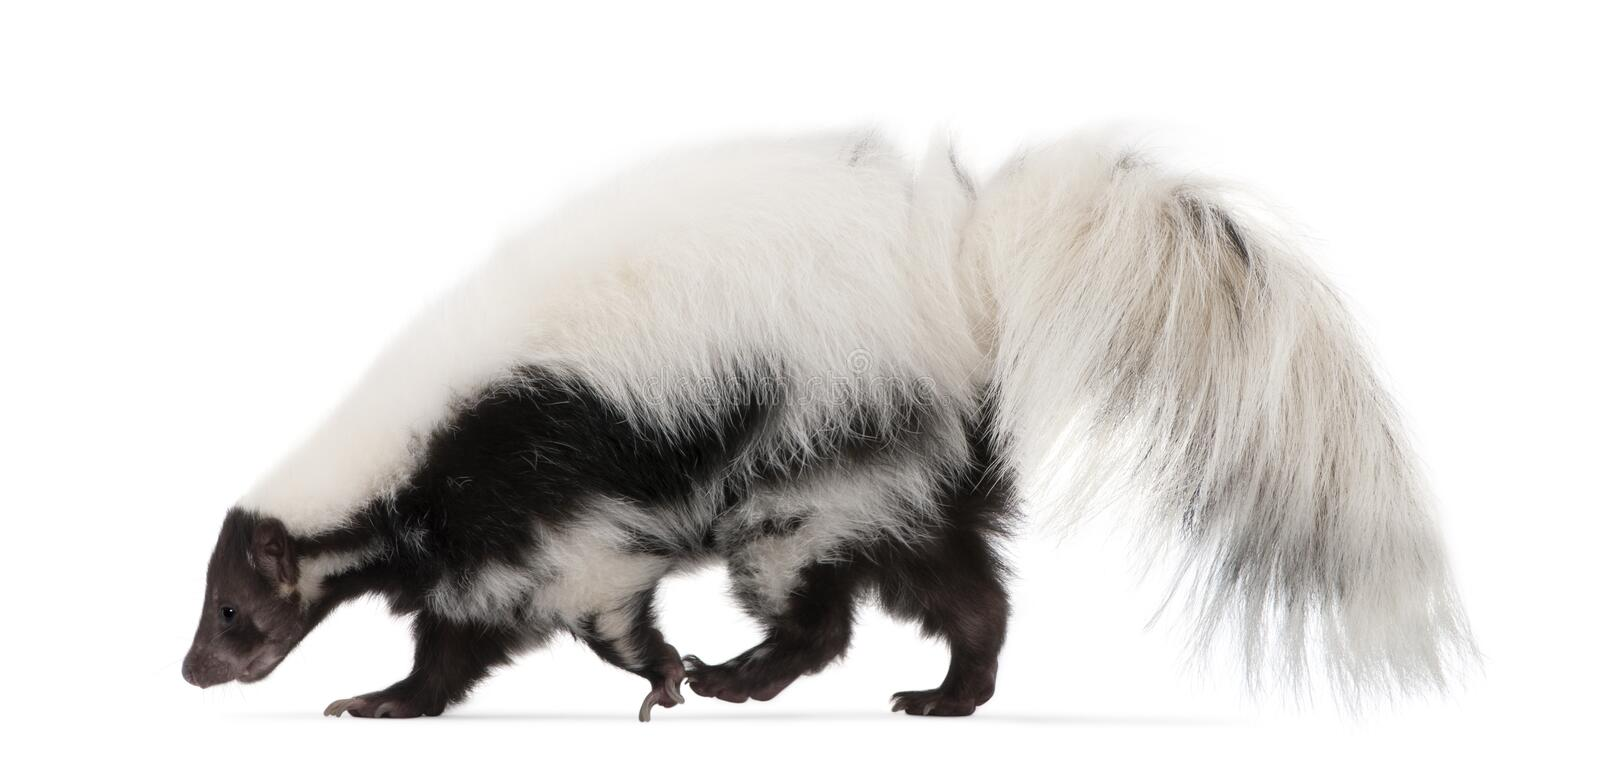 Striped Skunk, Mephitis Mephitis, 5 years old royalty free stock photo